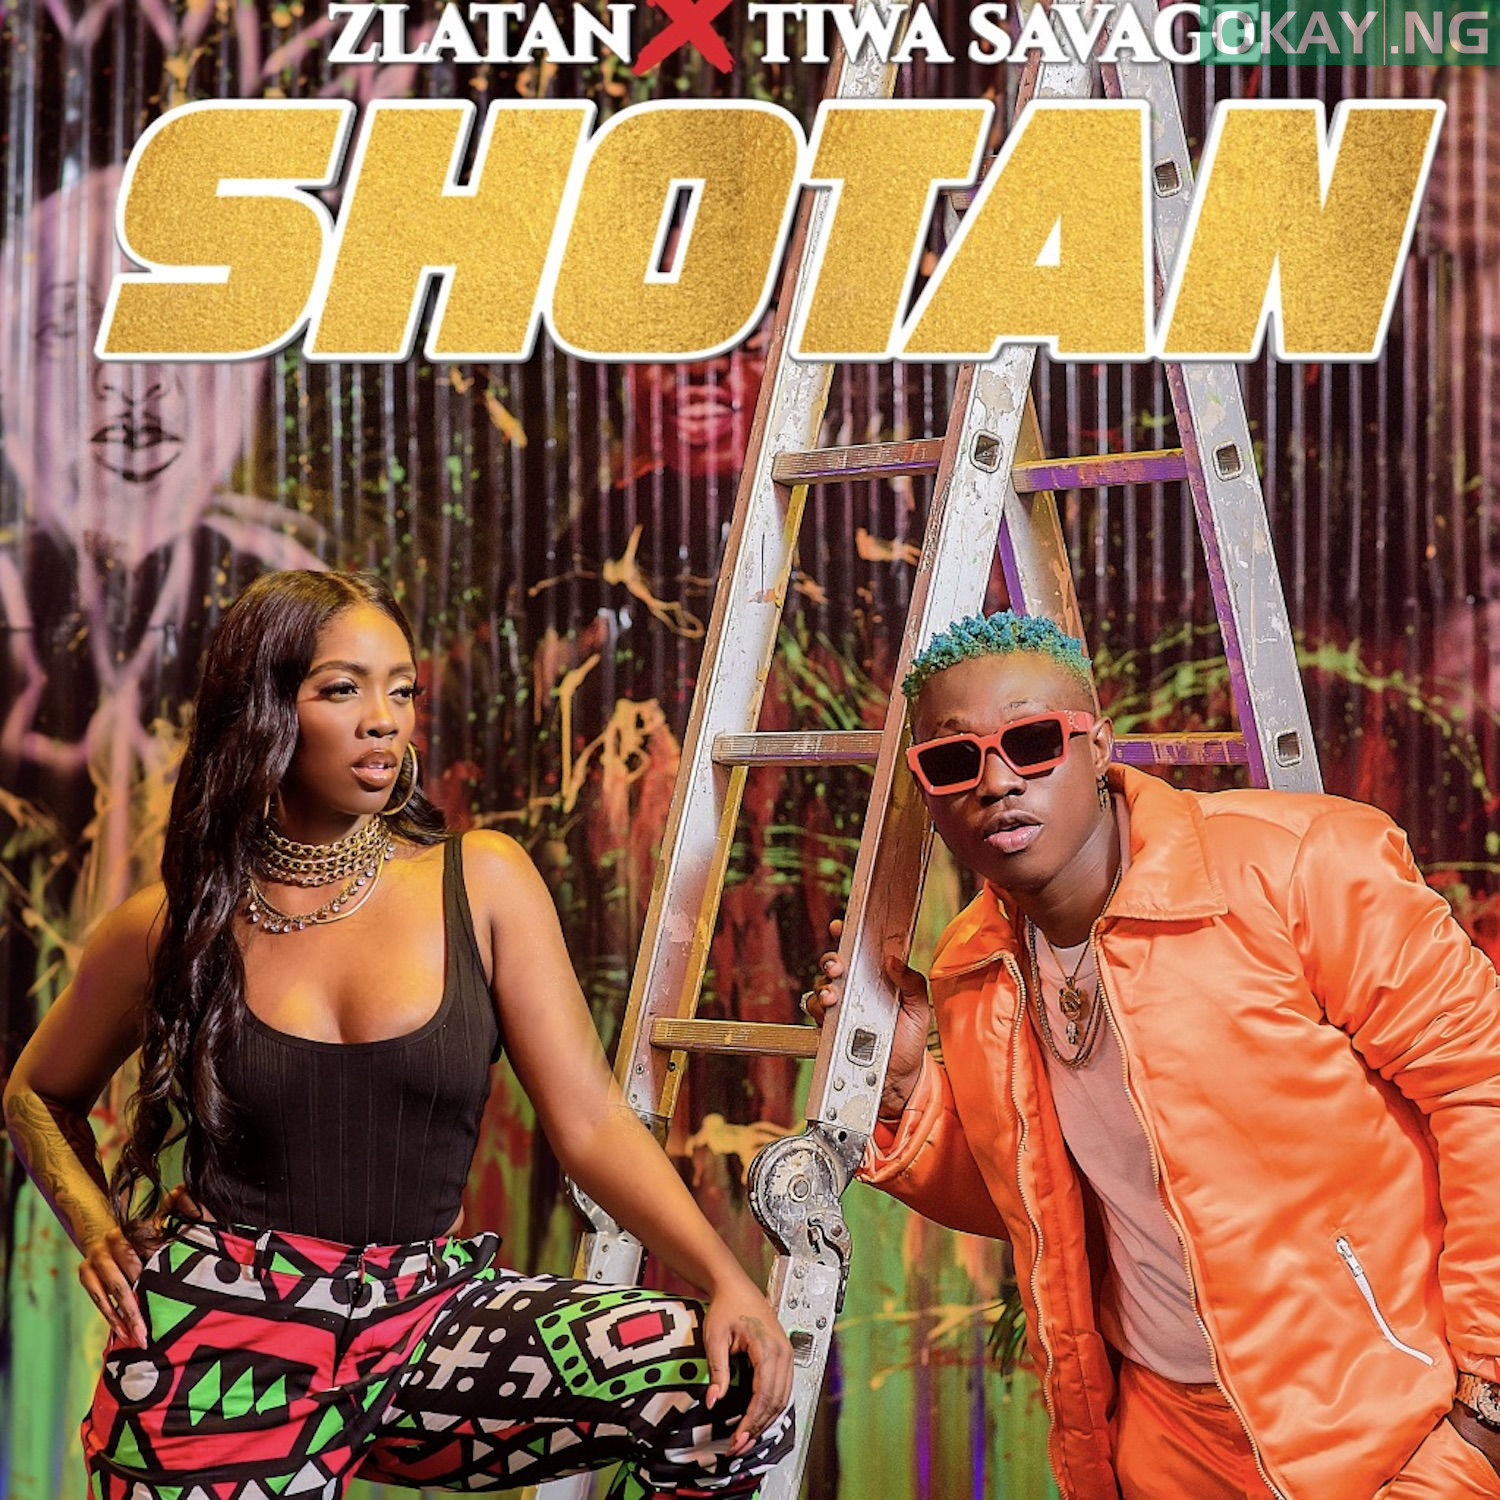 01 Shotan mp3 image - Zlatan teams up with Tiwa Savage for new song, 'Shotan' [Audio]